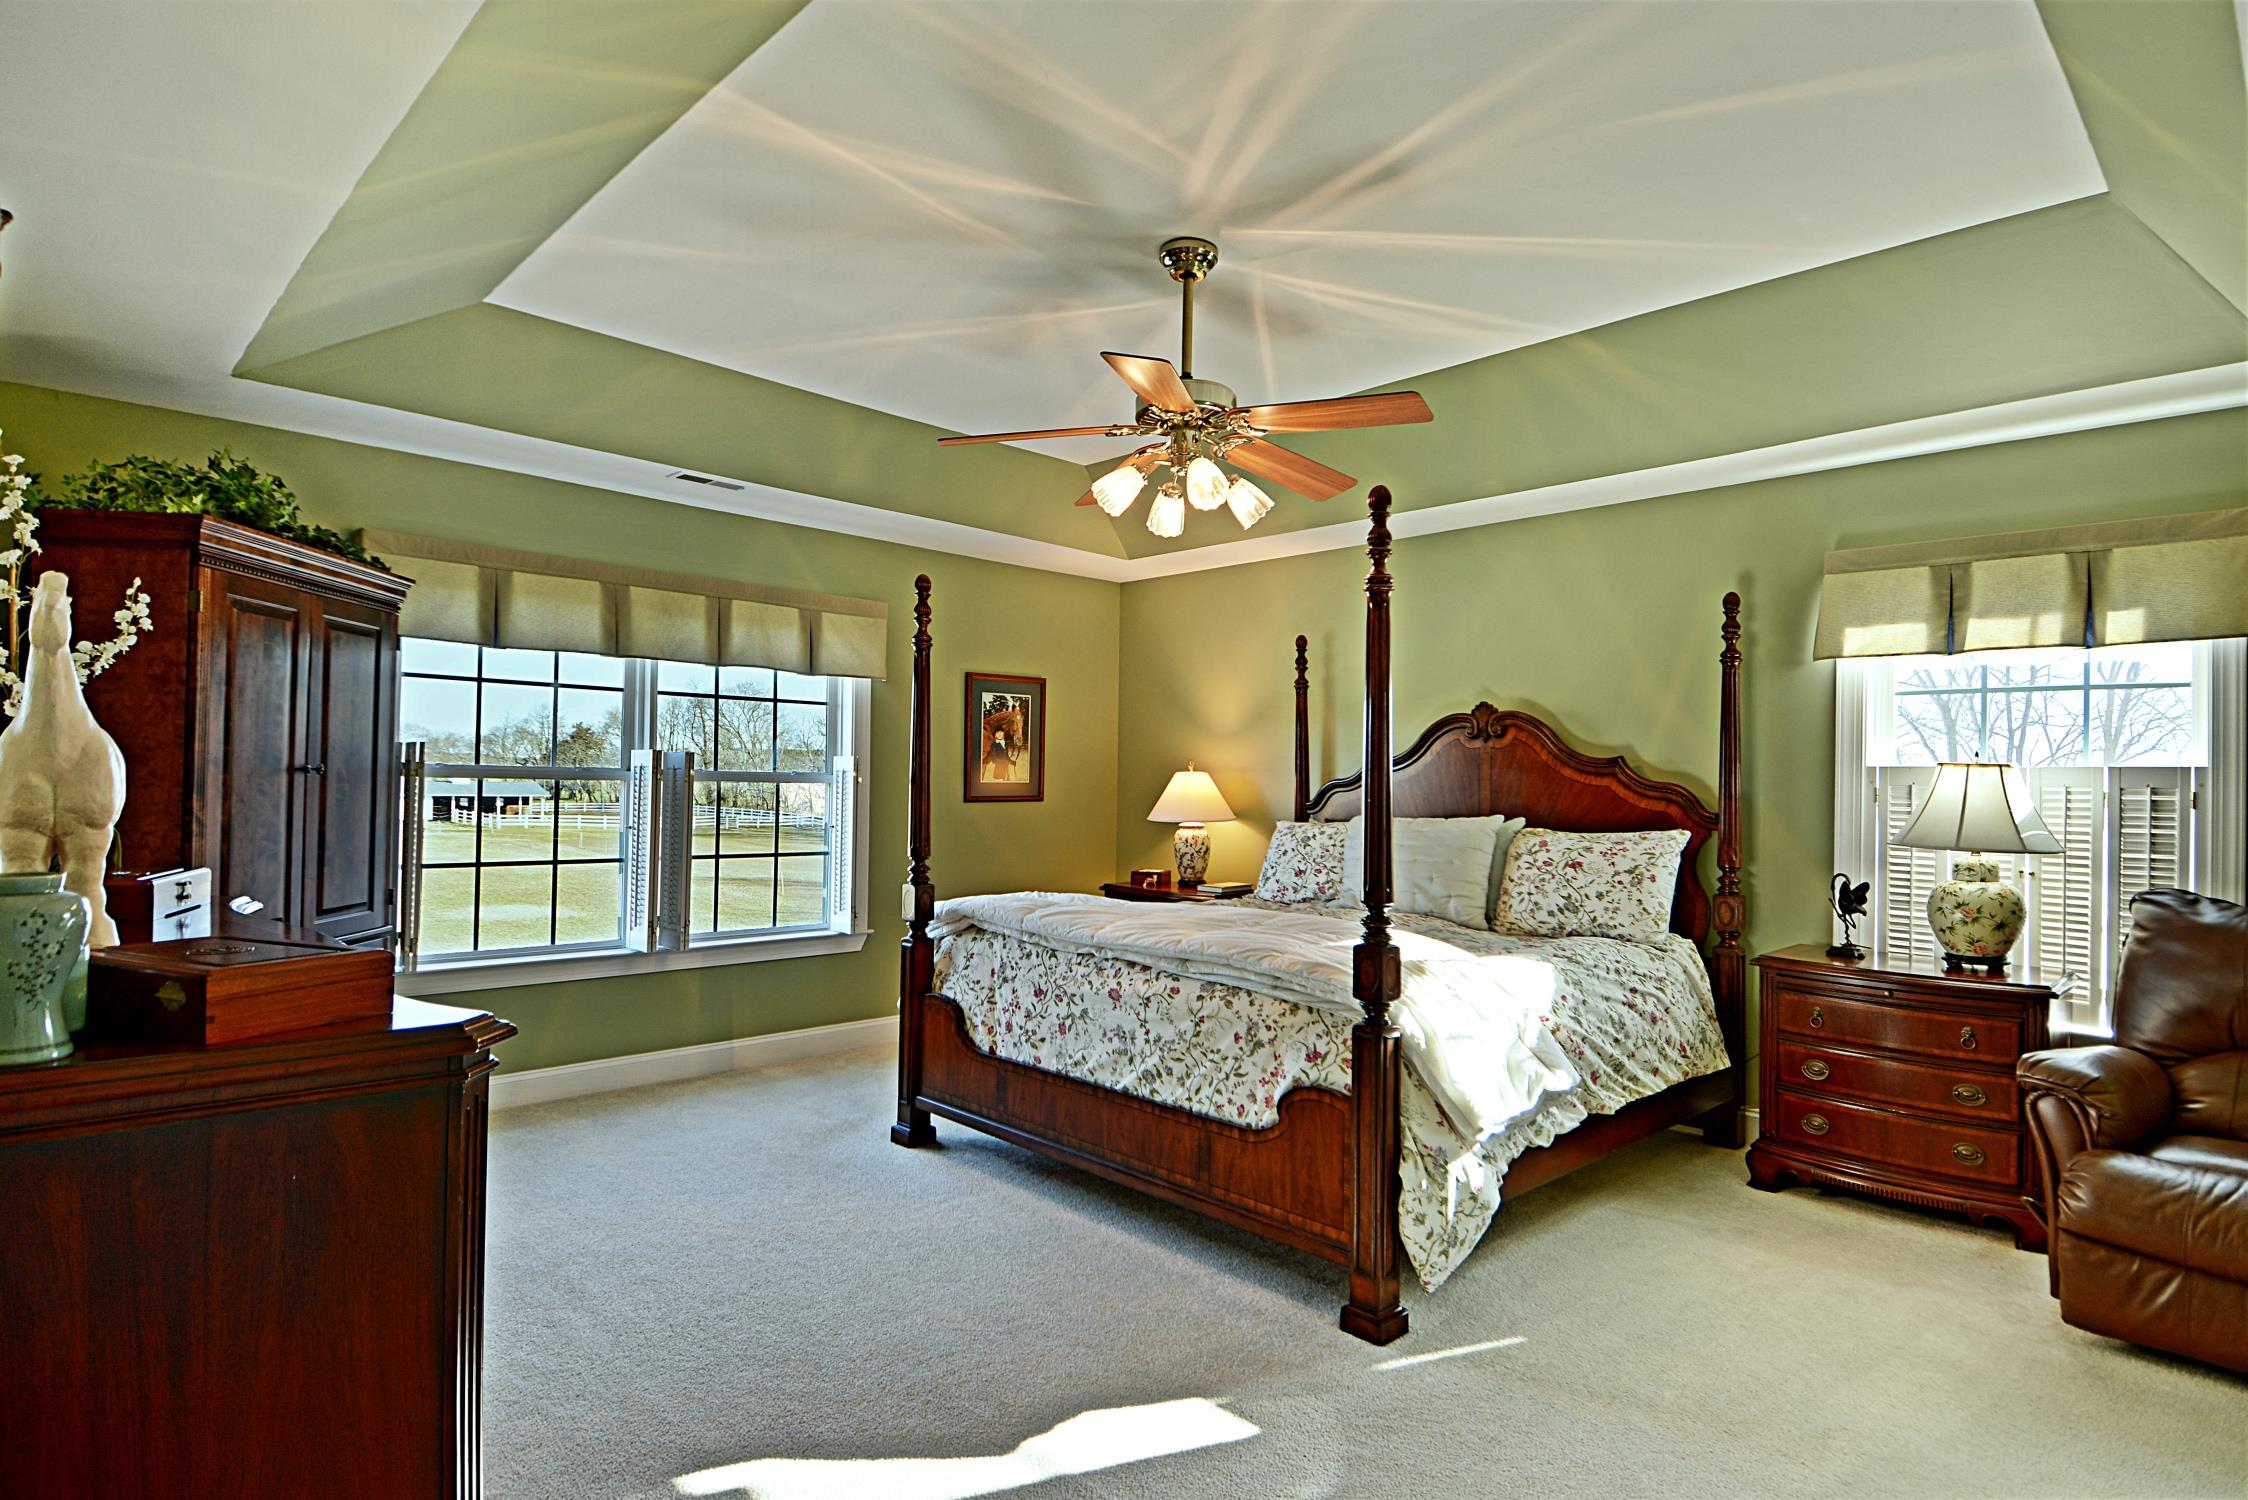 Fabulous Master suite!  21581 Montfort Rd in Bushwood Maryland - this beautiful waterfront horse farm is gorgeous!  Call Marie Lally, specializing in waterfront homes and horse farms in Southern Maryland to schedule your showing today!